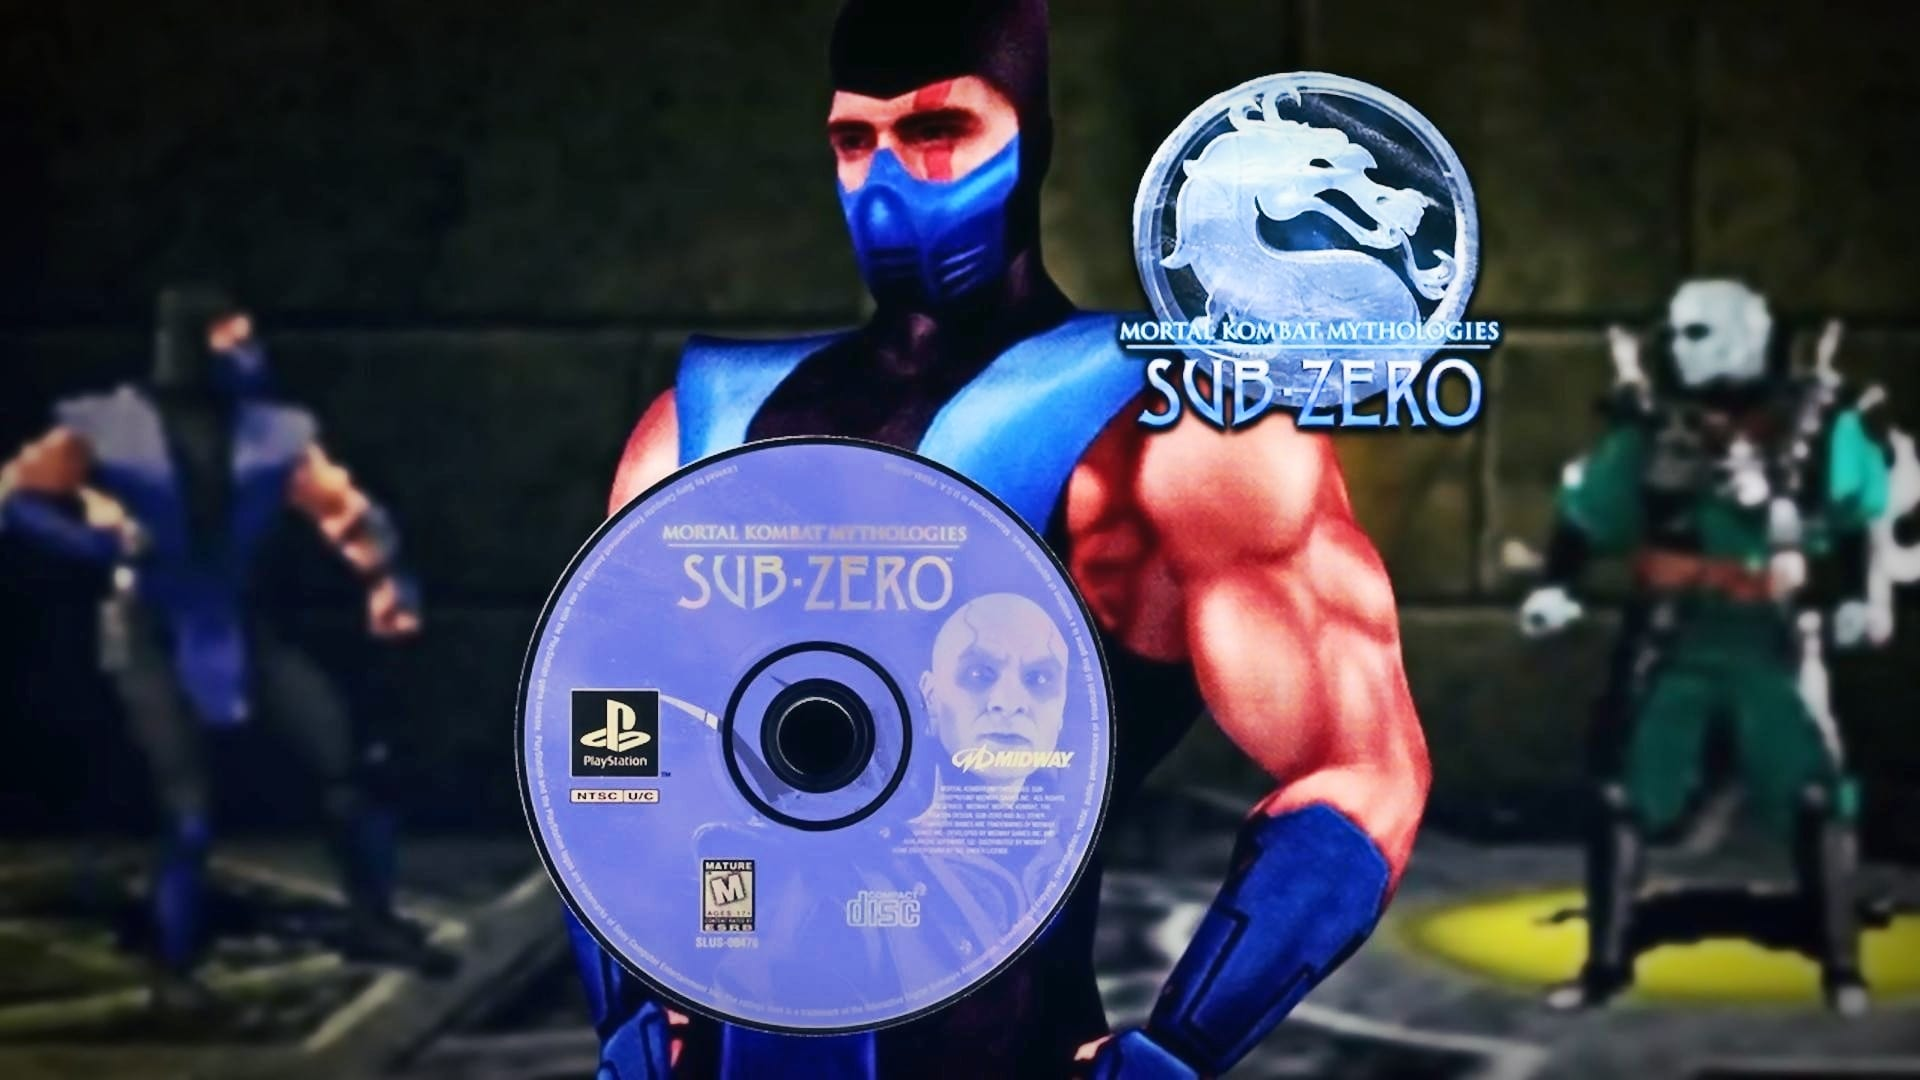 A collection of images related to the game Mortal Kombat Mythologies: Sub-Zero